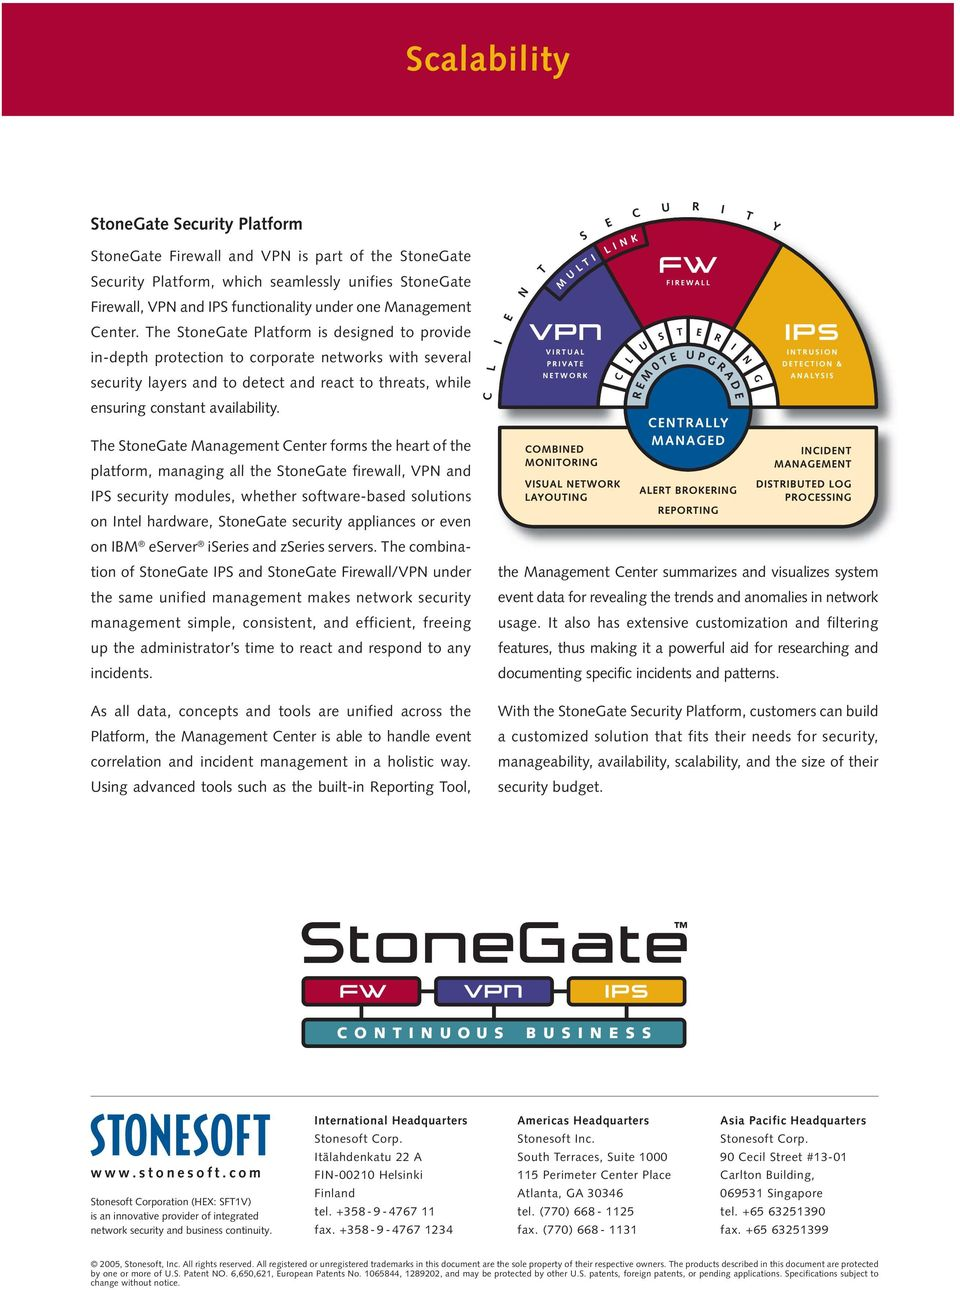 The StoneGate Platform is designed to provide in-depth protection to corporate networks with several security layers and to detect and react to threats, while ensuring constant availability.